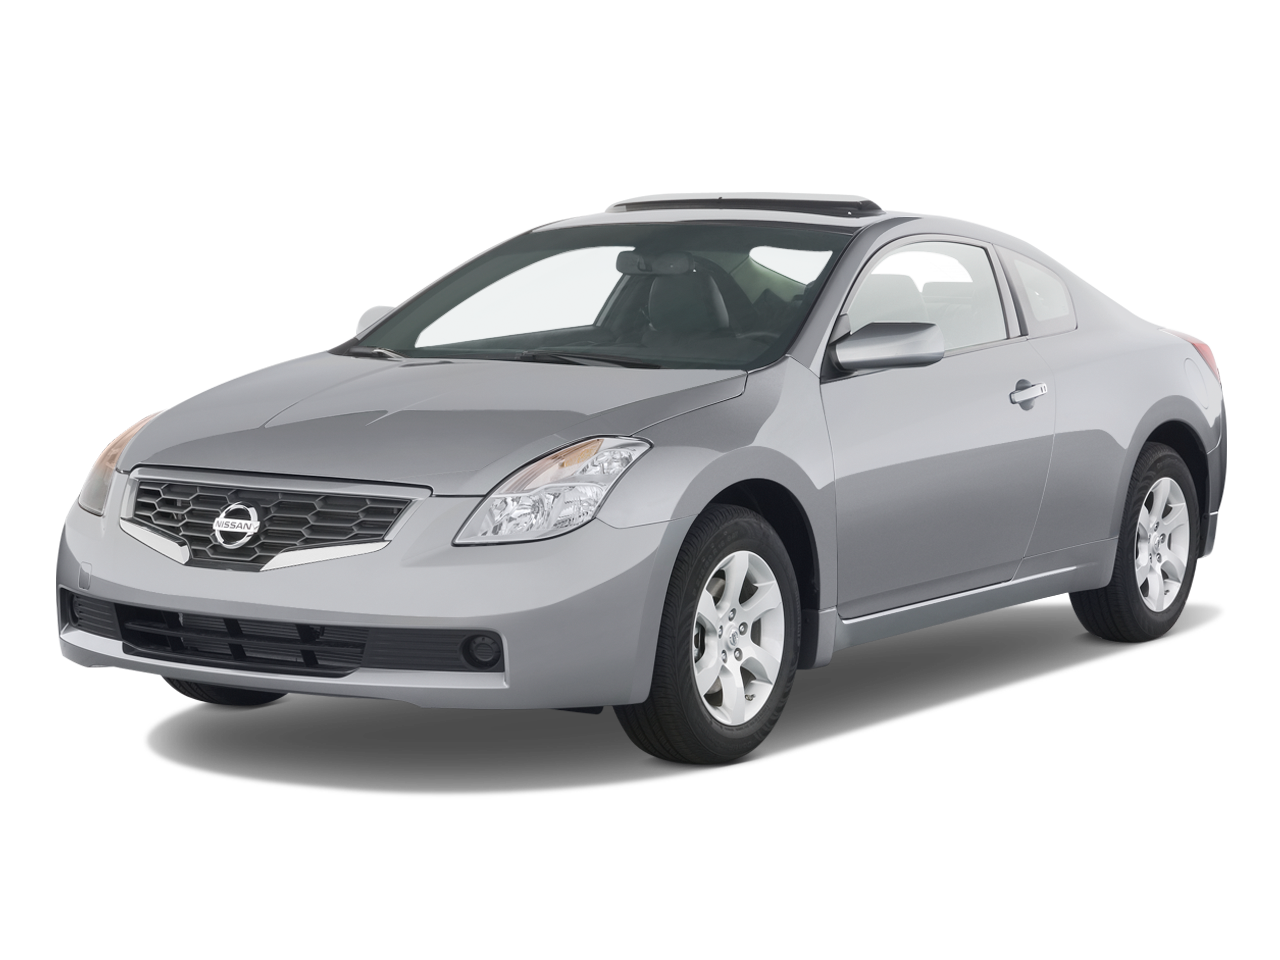 17 Gallery of 2008 Nissan Altima Pricing with 2008 Nissan Altima